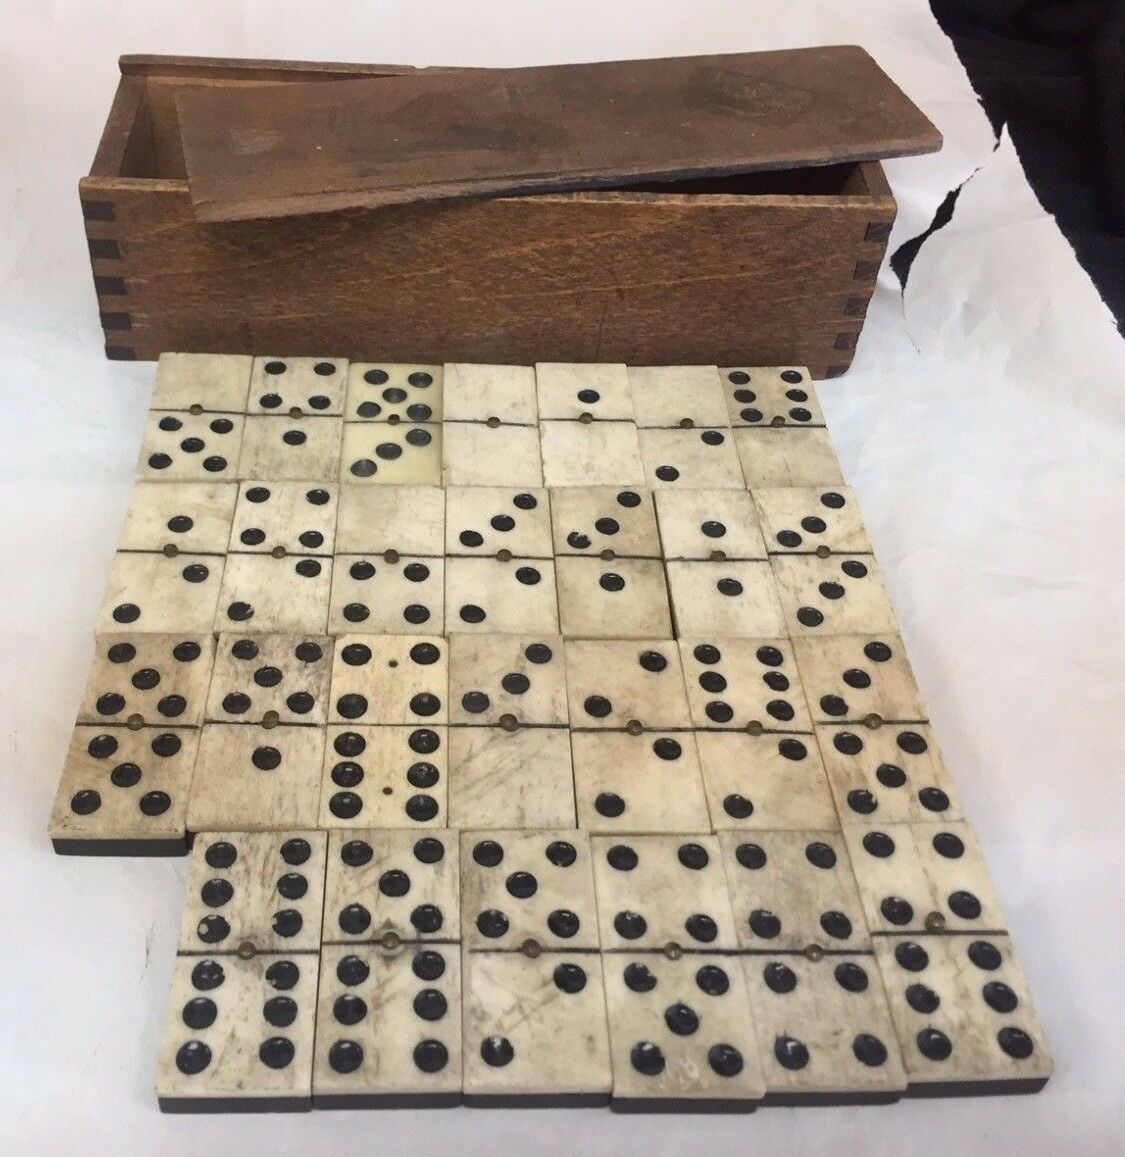 Antique CA@ 1880 Ebony and Bone Dominoes 27 Pieces Brass Pins 3 Pin W/ Wood Box